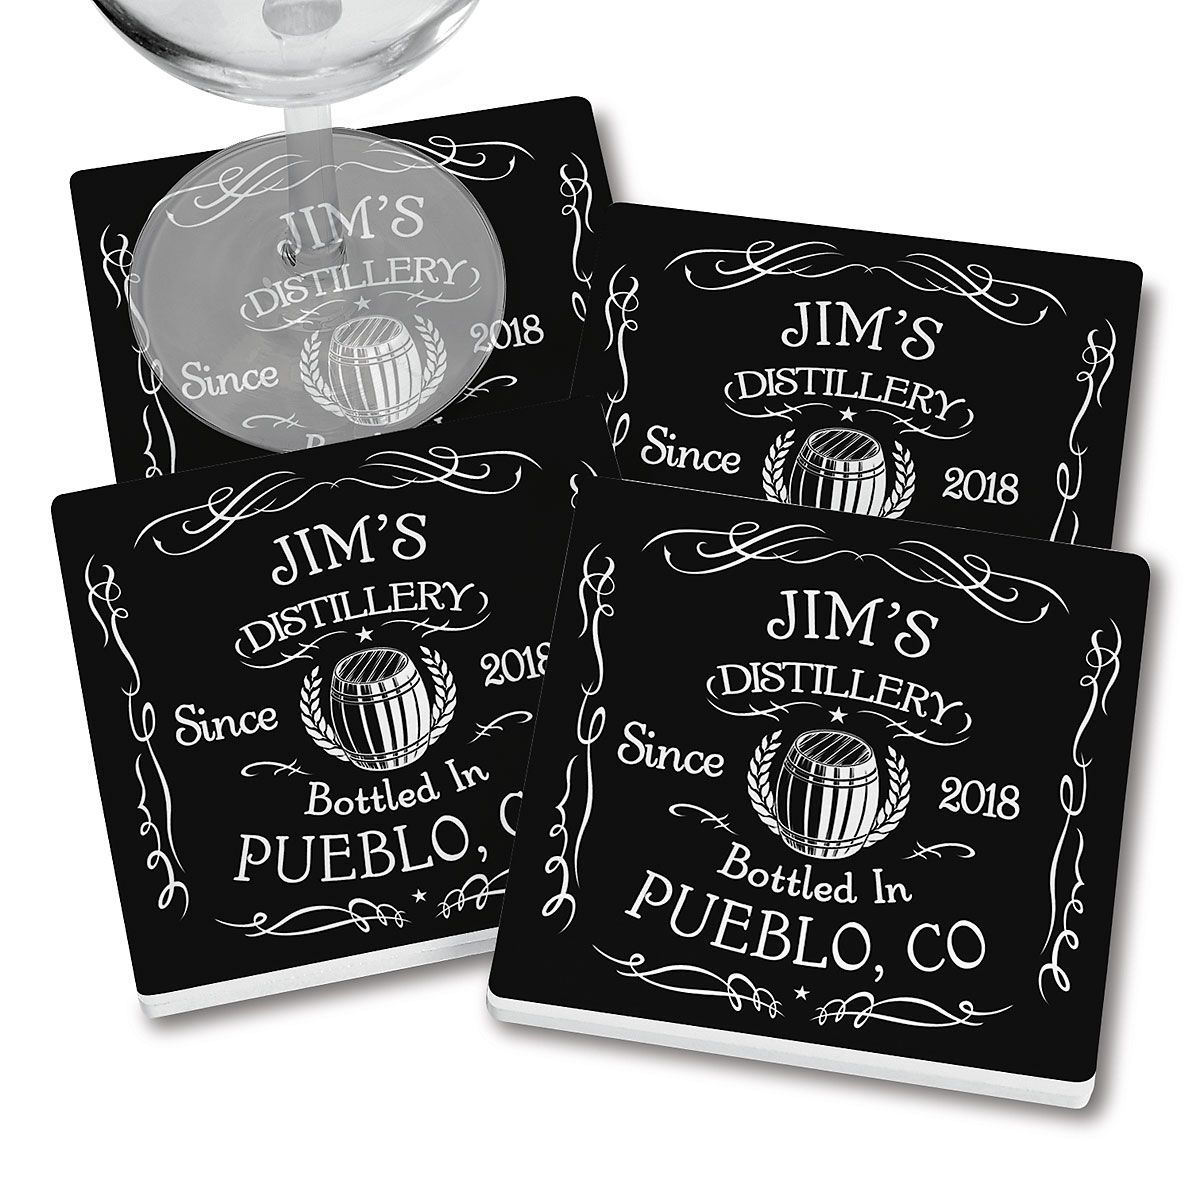 Distillery Personalized Ceramic Coasters